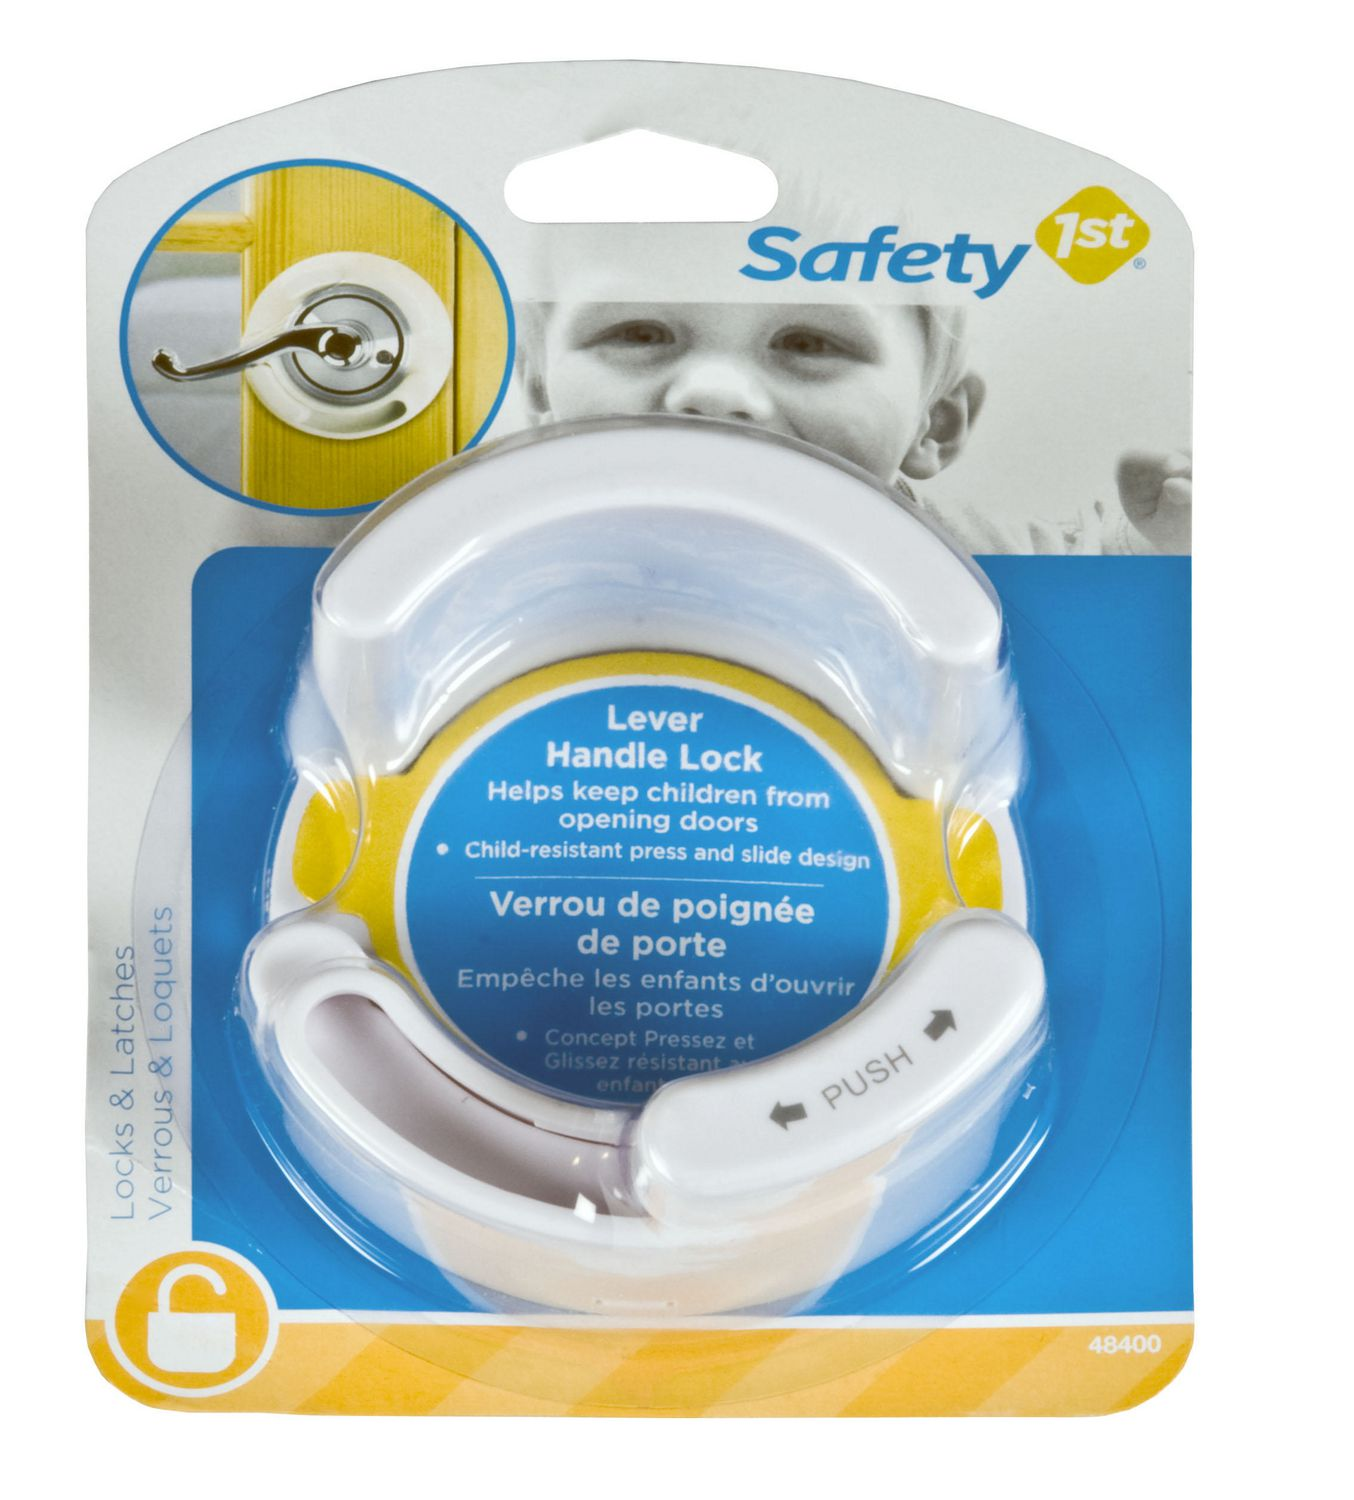 Safety 1st Locks & Latches Lever Handle Lock | Walmart Canada